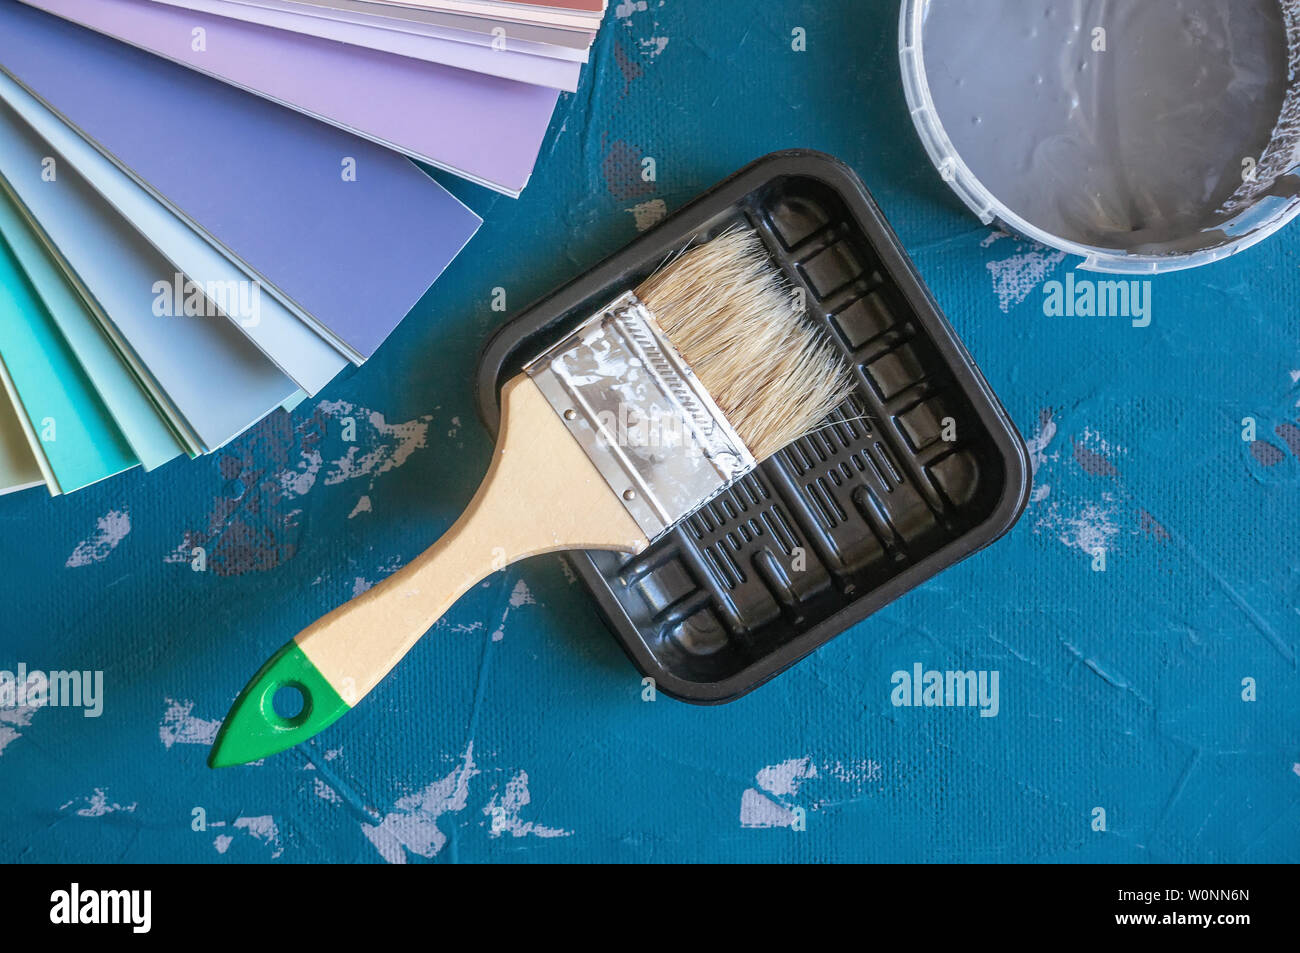 Choose a paint color for the walls. Spatula for painting and wall putty and background in a tray next to a bucket of putty.. Create a background. - Stock Image